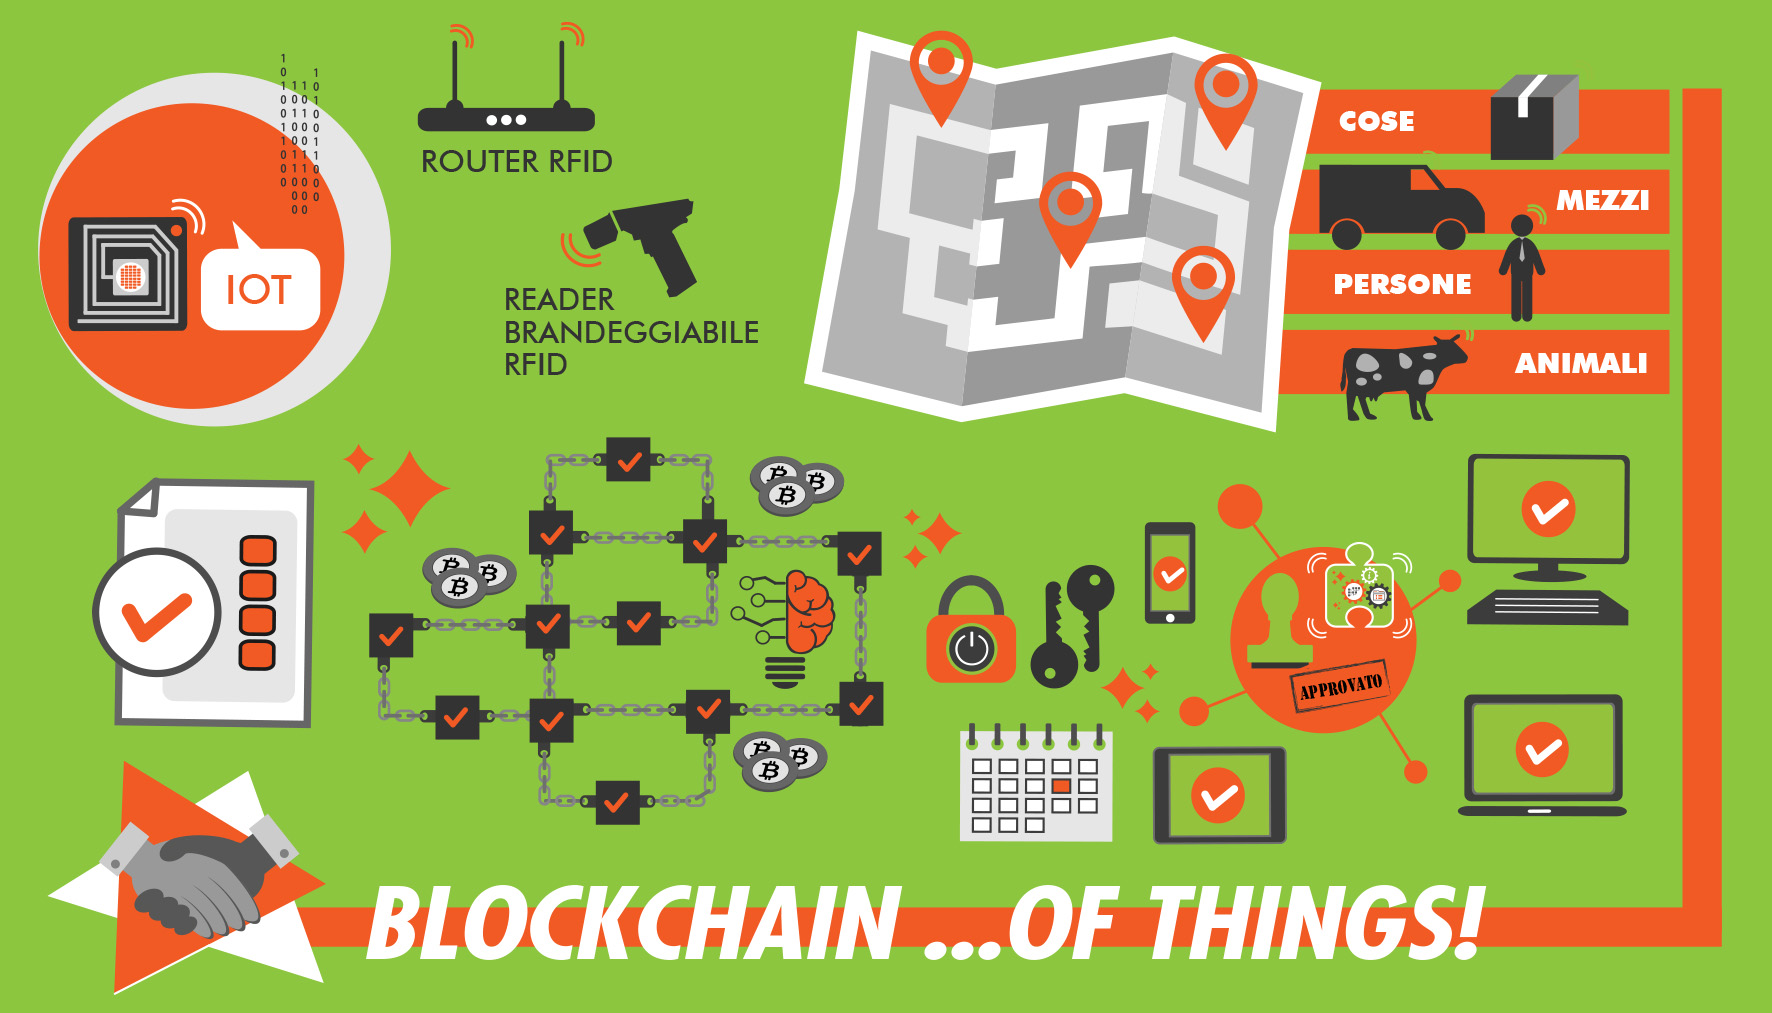 IoT e BLOCKCHAIN of Things